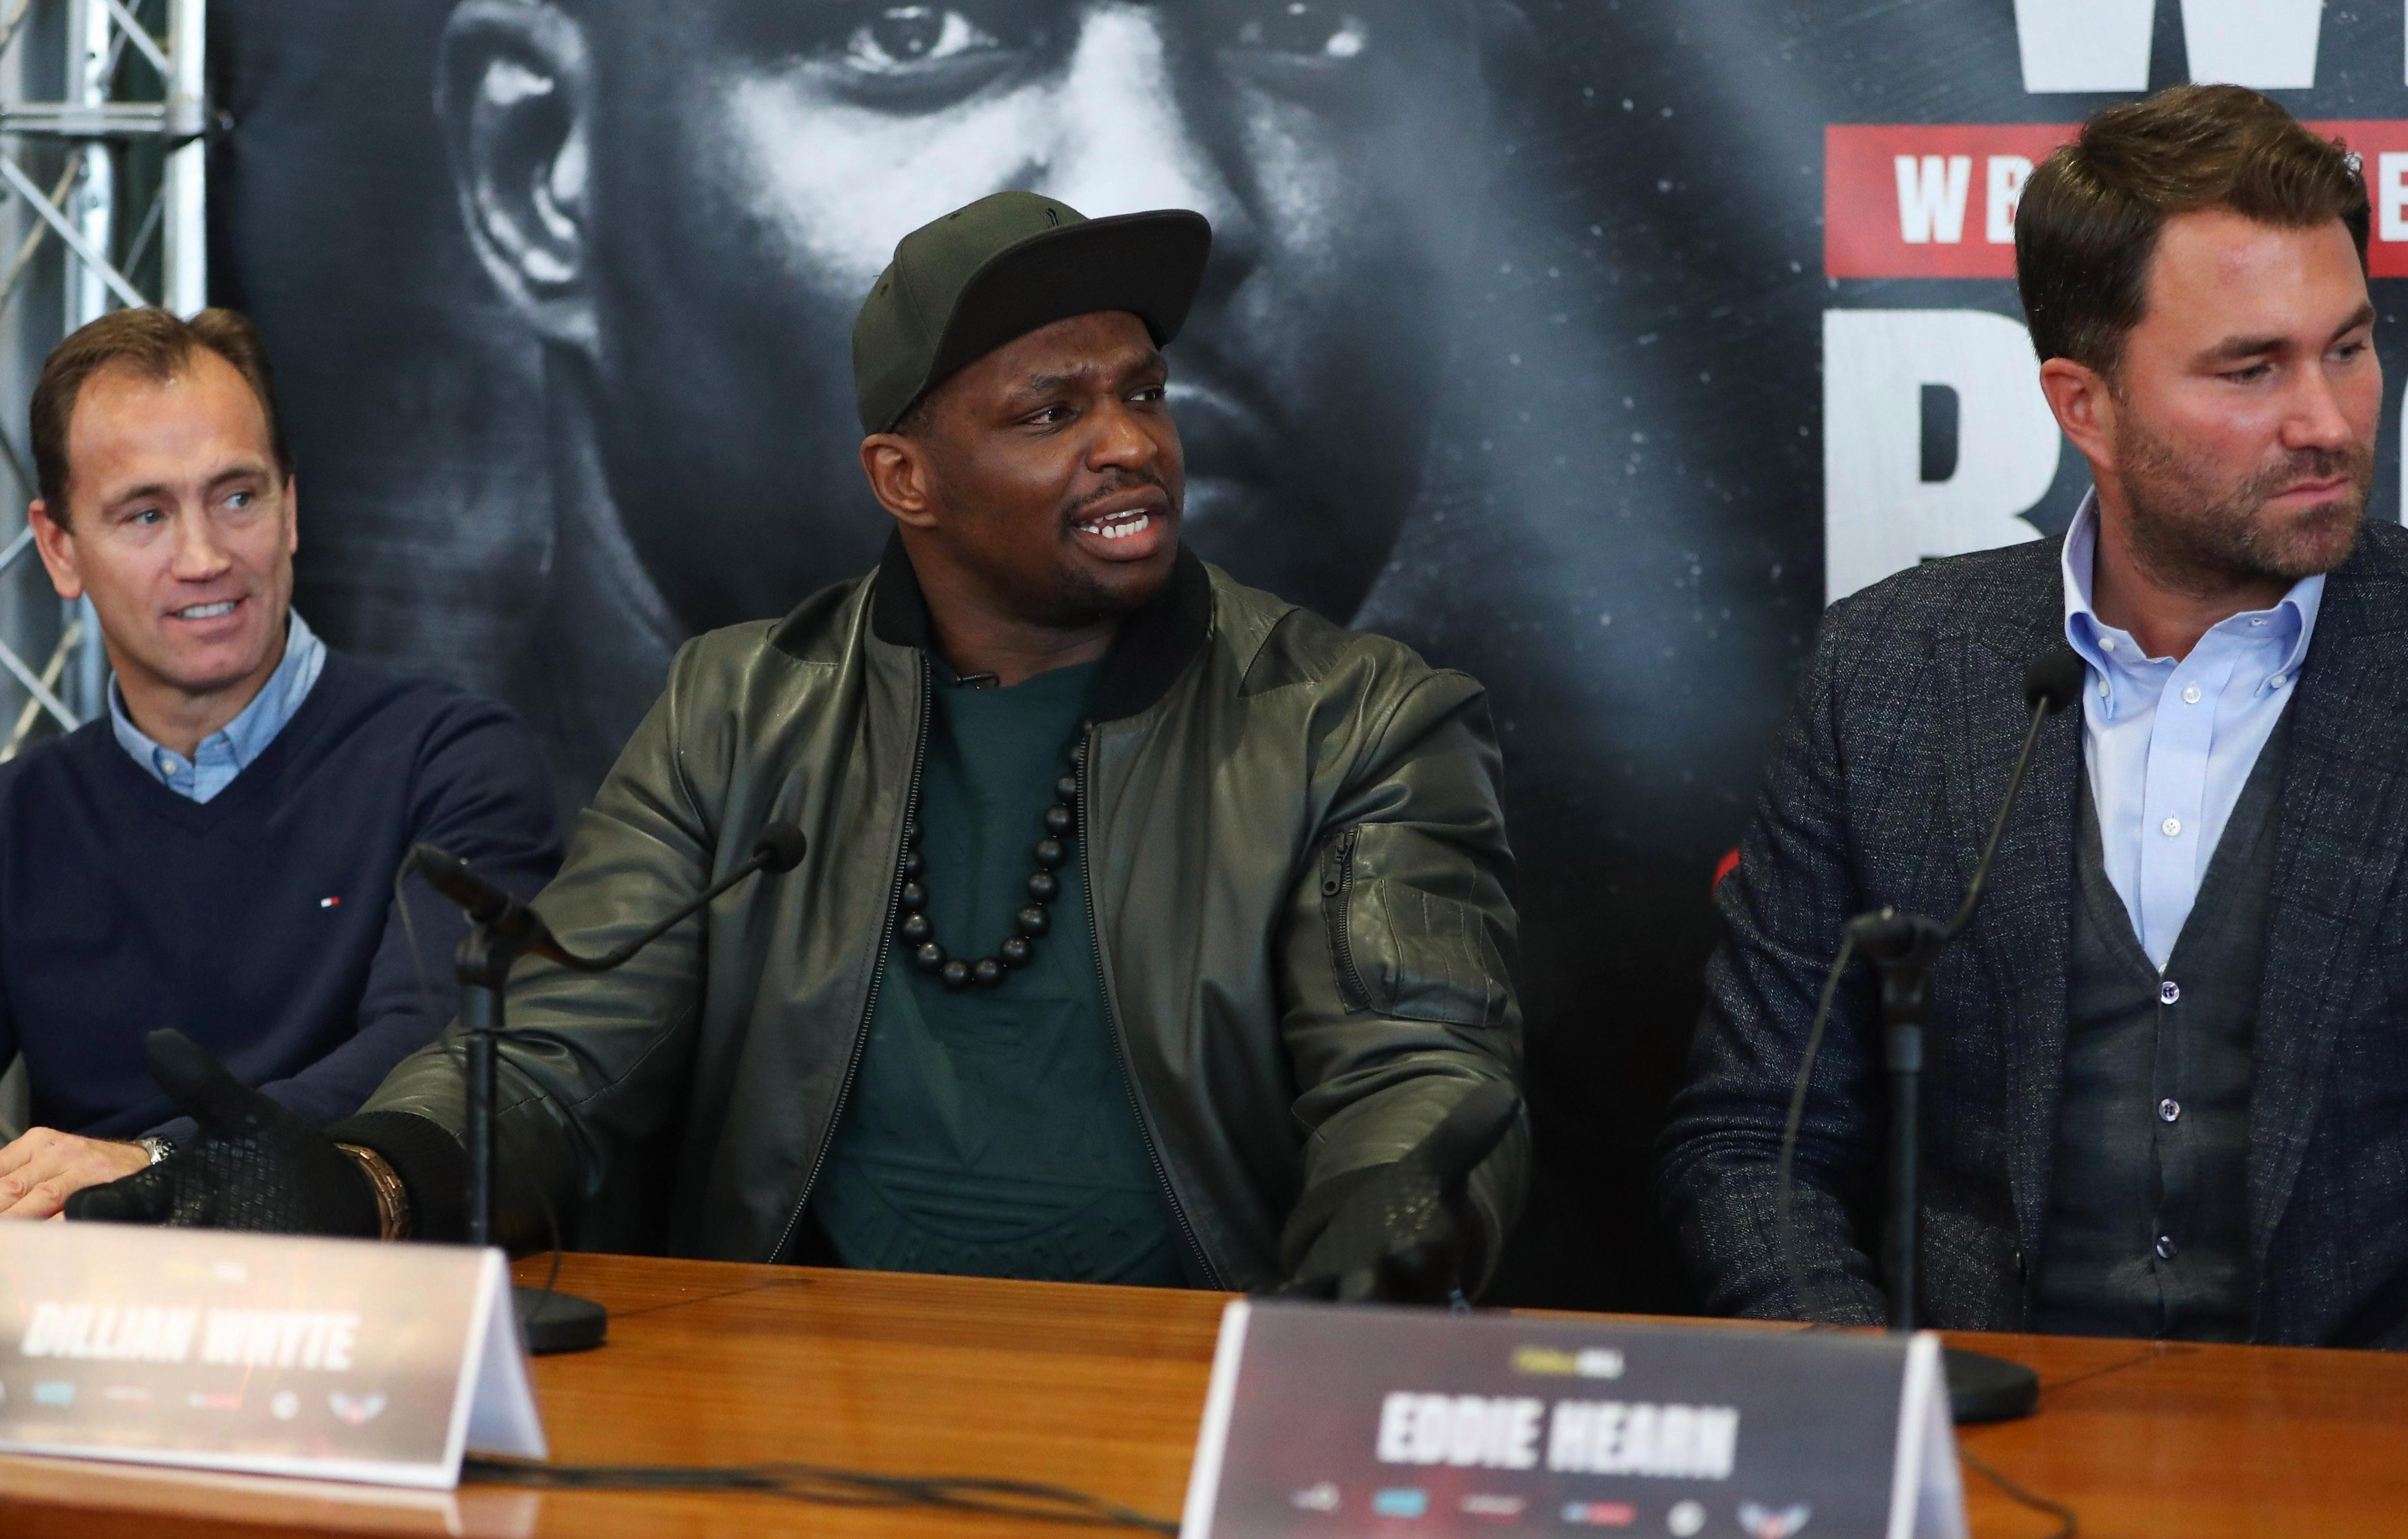 Dillian Whyte says his mum comes to watch his fights while his dad is a bit scary